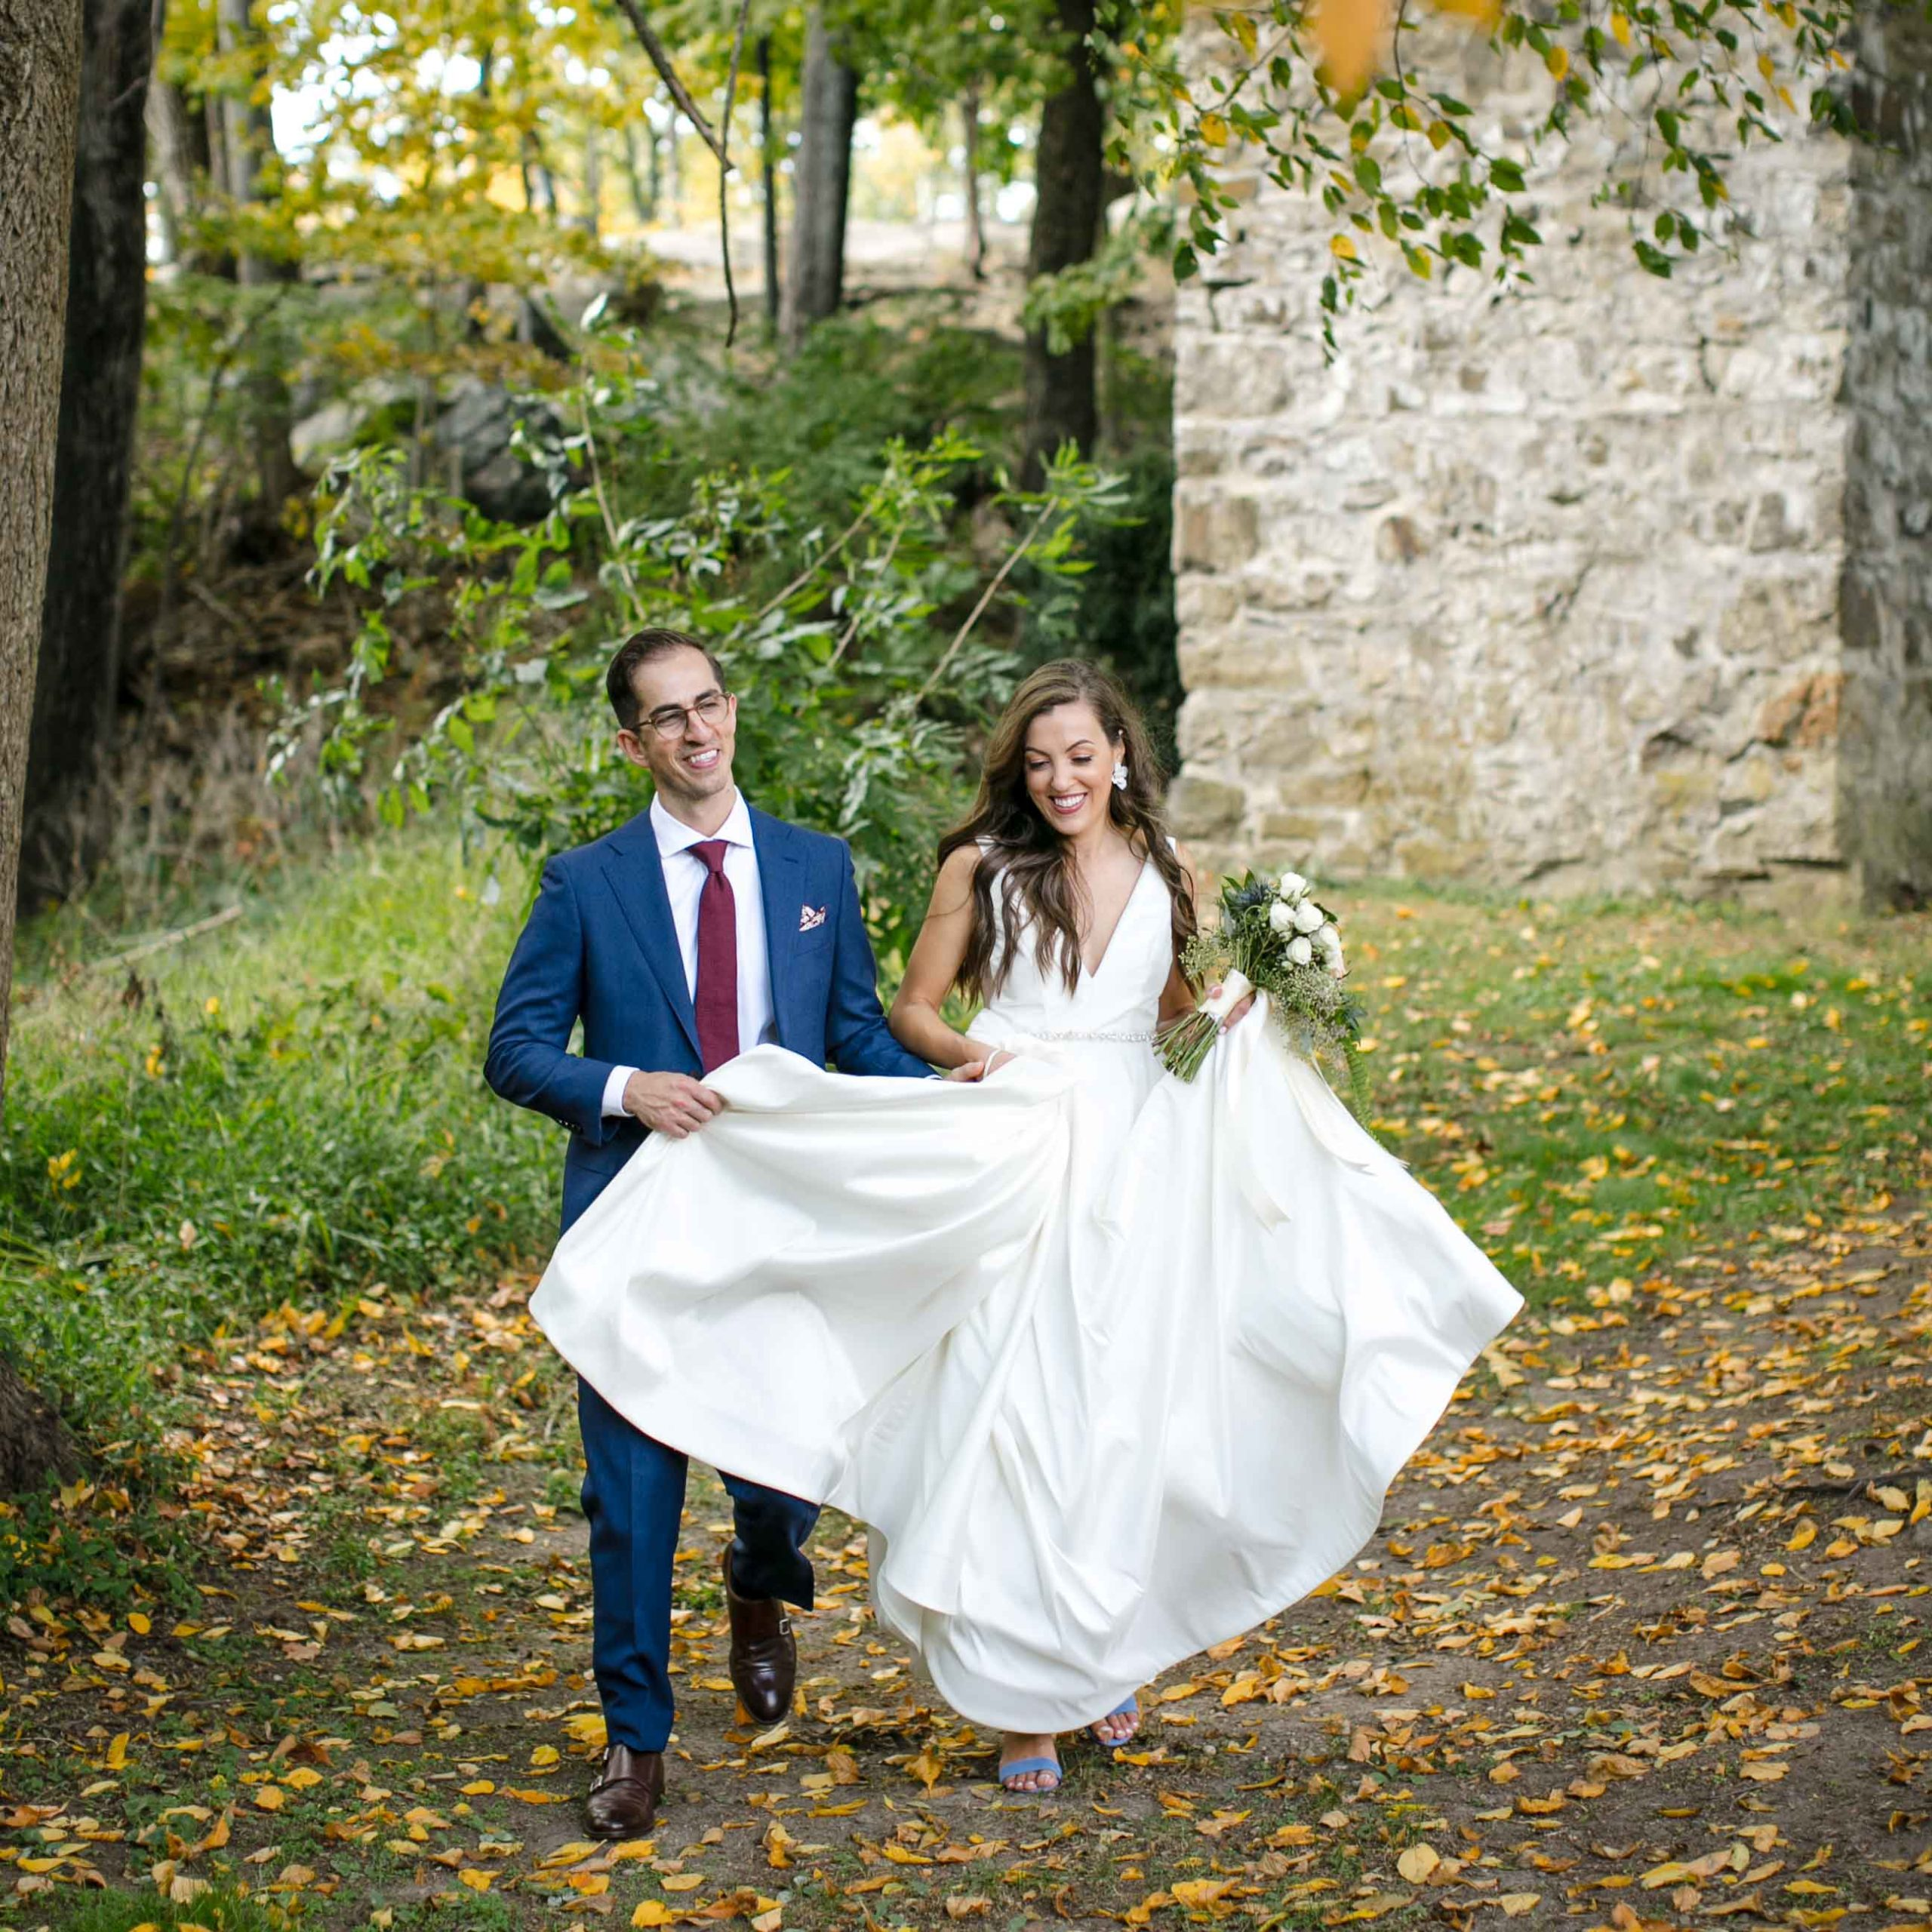 bride and groom walking on leaf strewn lawn